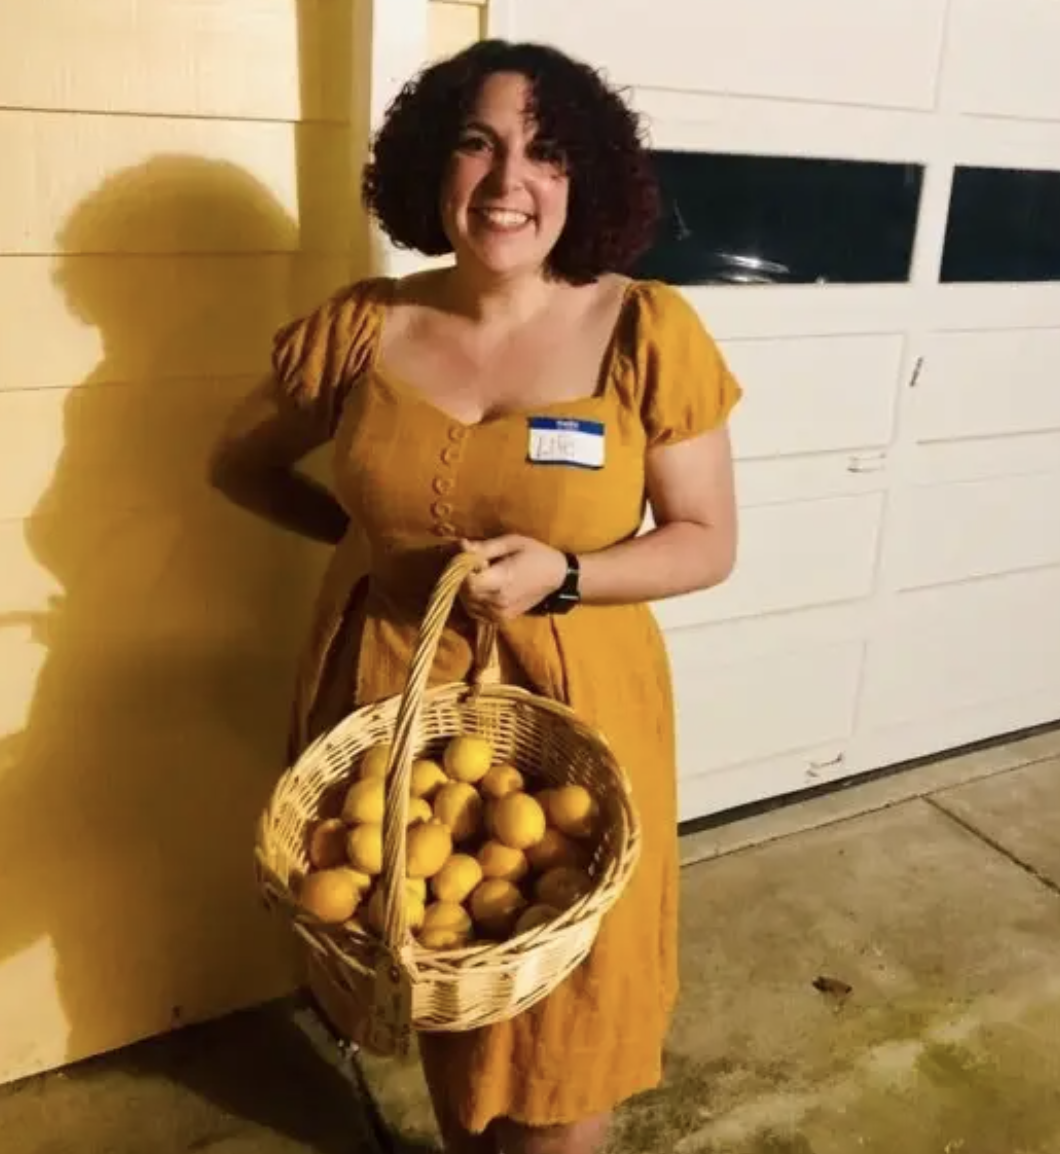 """Someone in a yellow dress, holding a basket of lemons, wearing a name tag that says """"Life"""""""